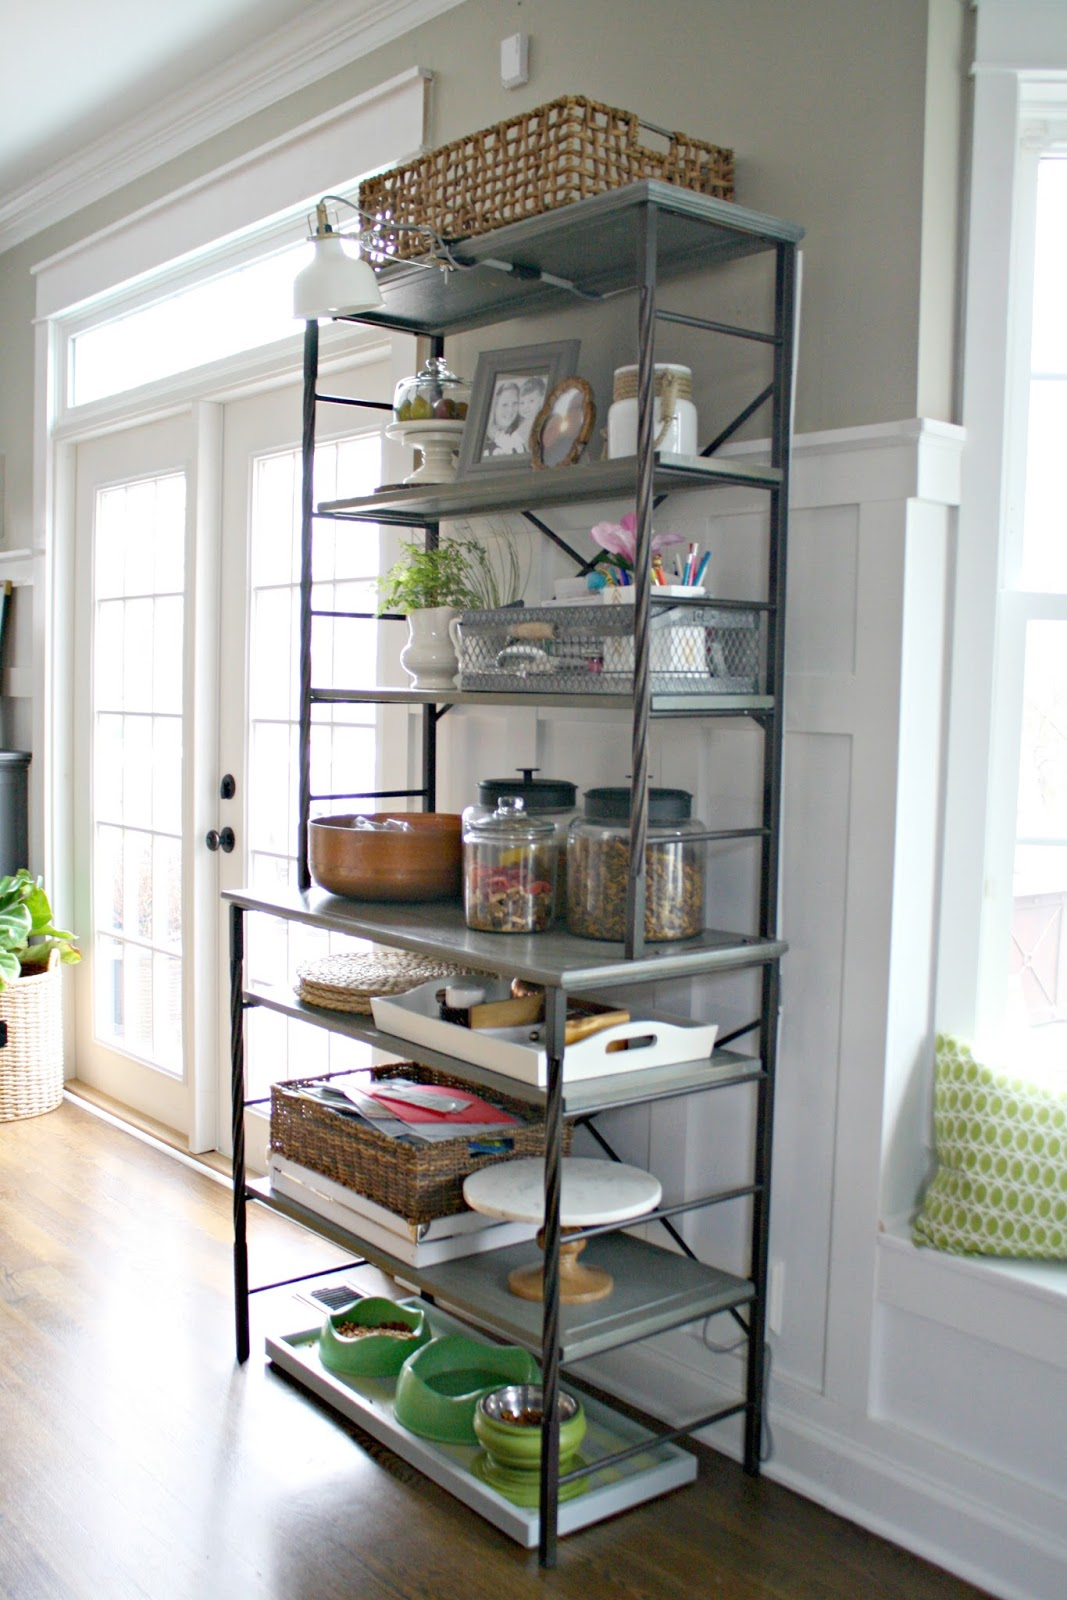 FAQs from Thrifty Decor Chick